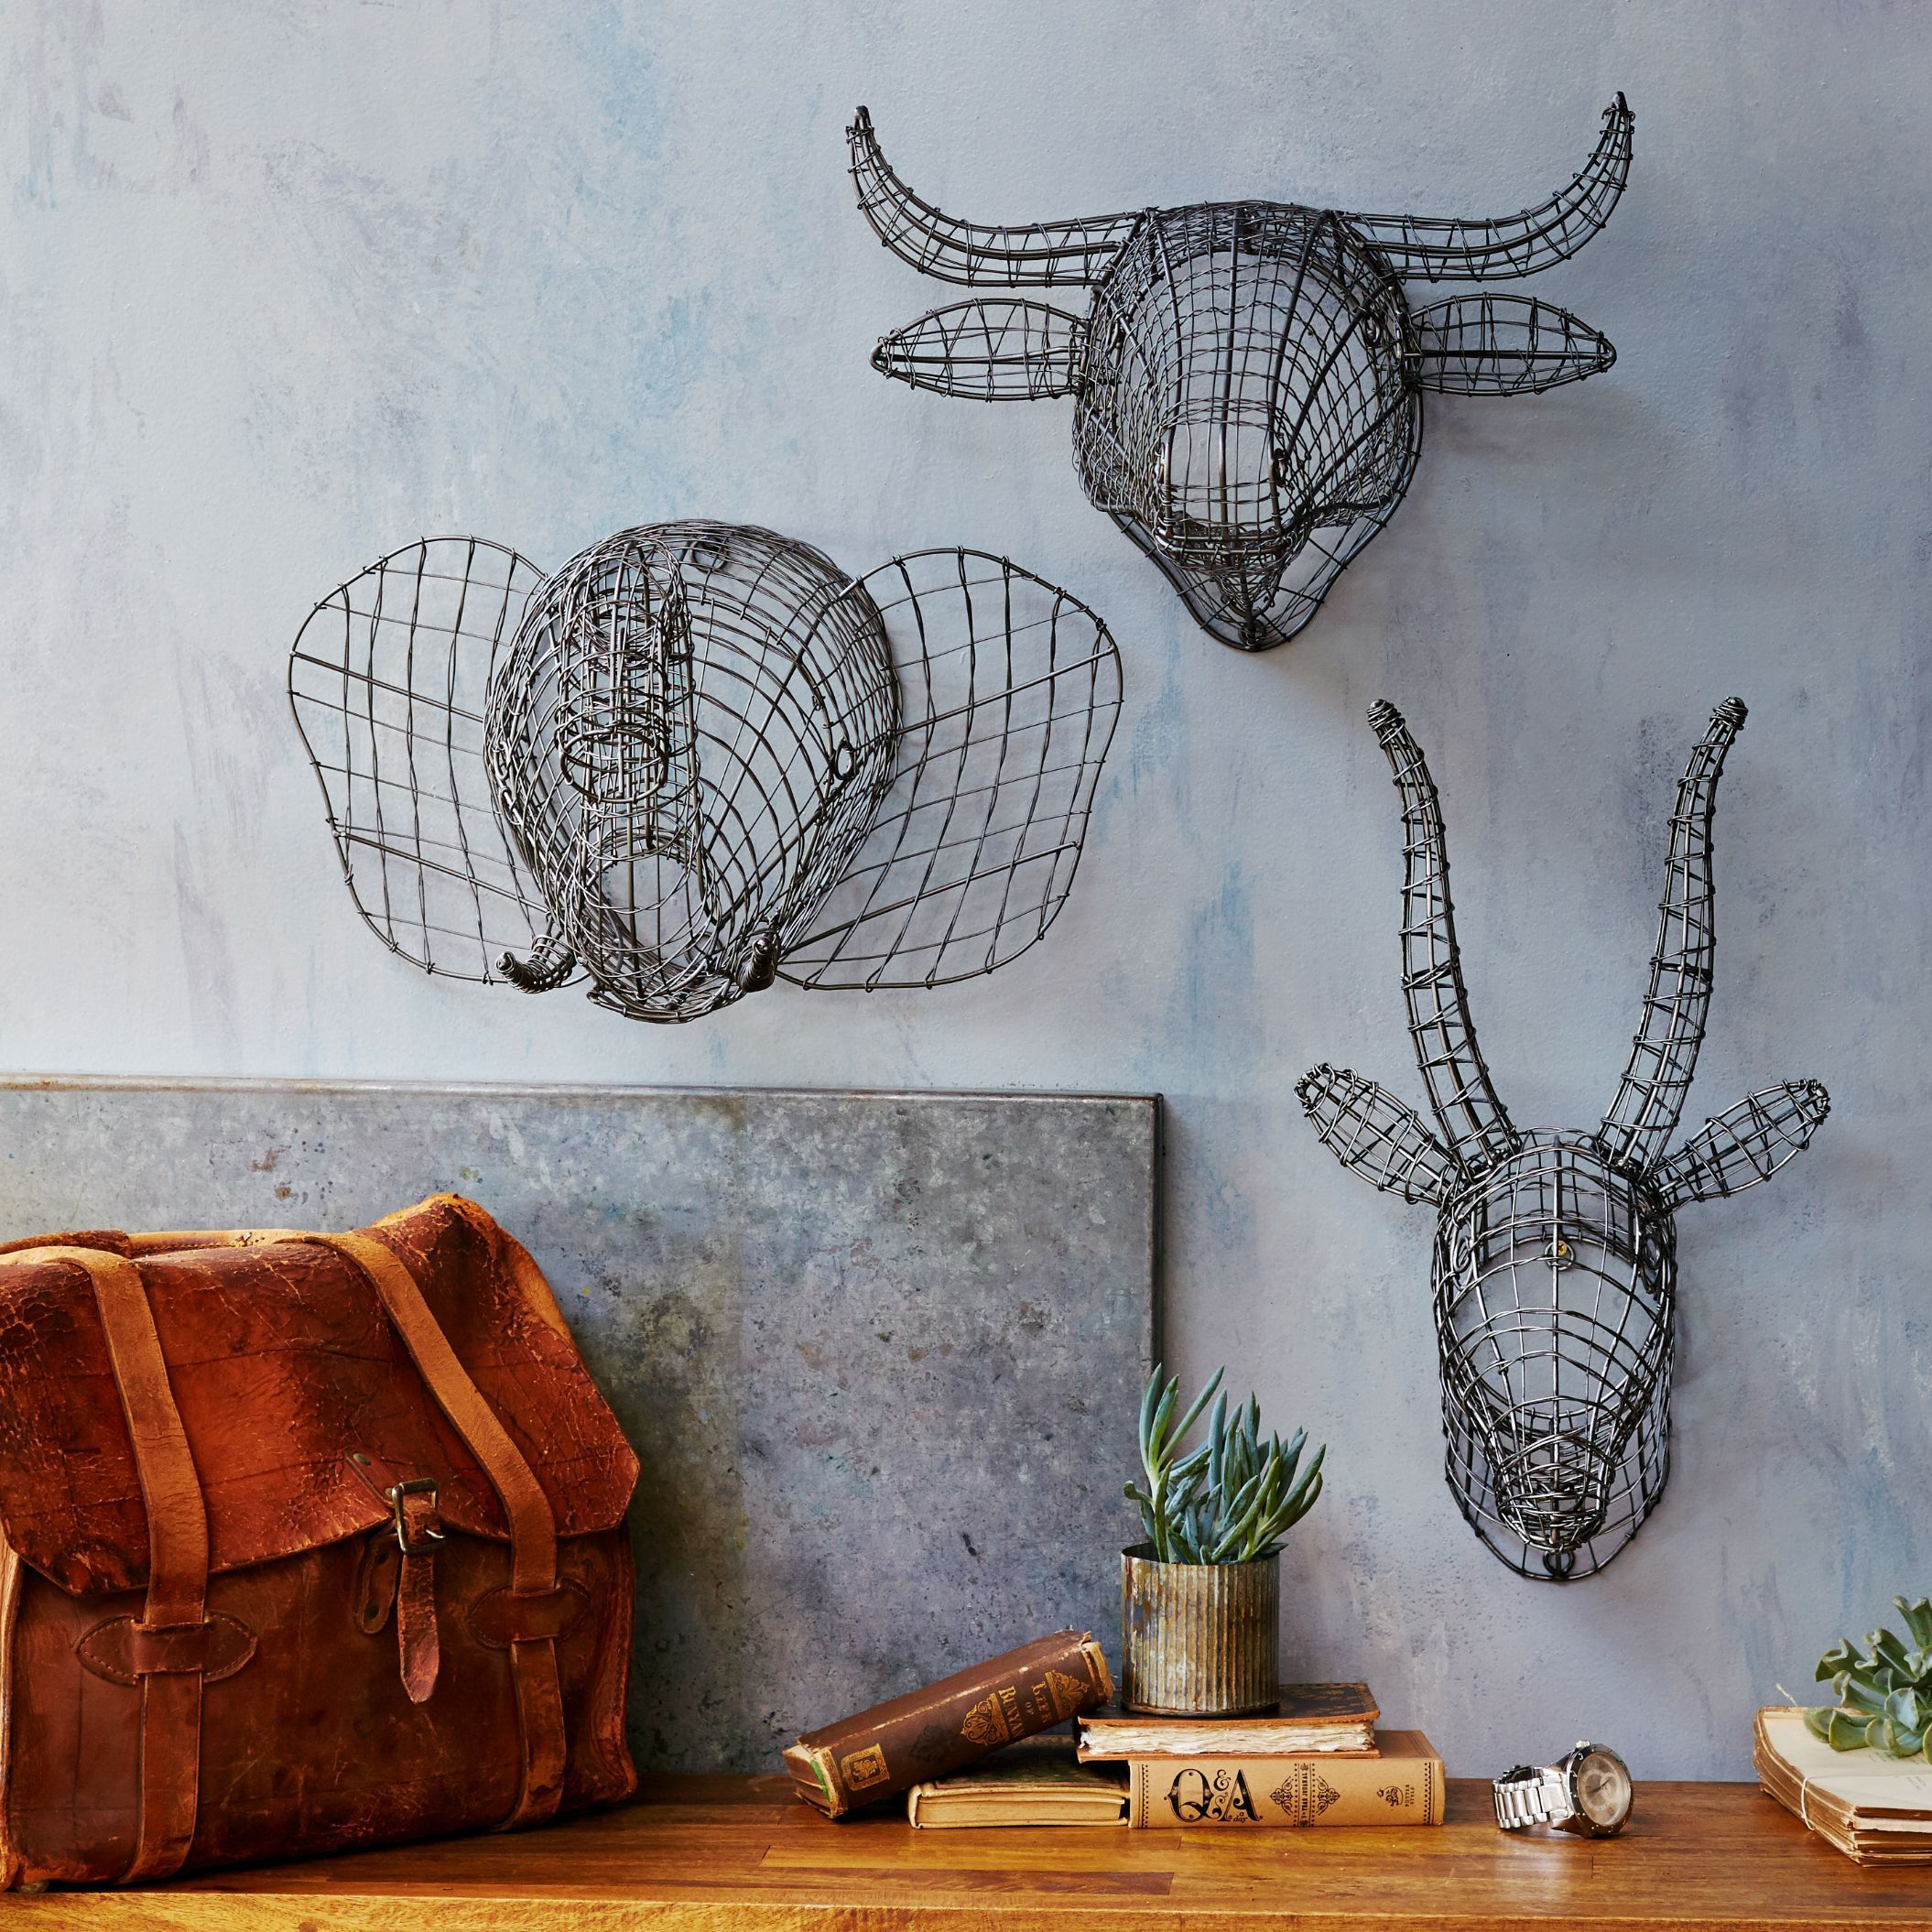 Our Handmade Wire Animal Busts Feature Intricate Wire Construction With